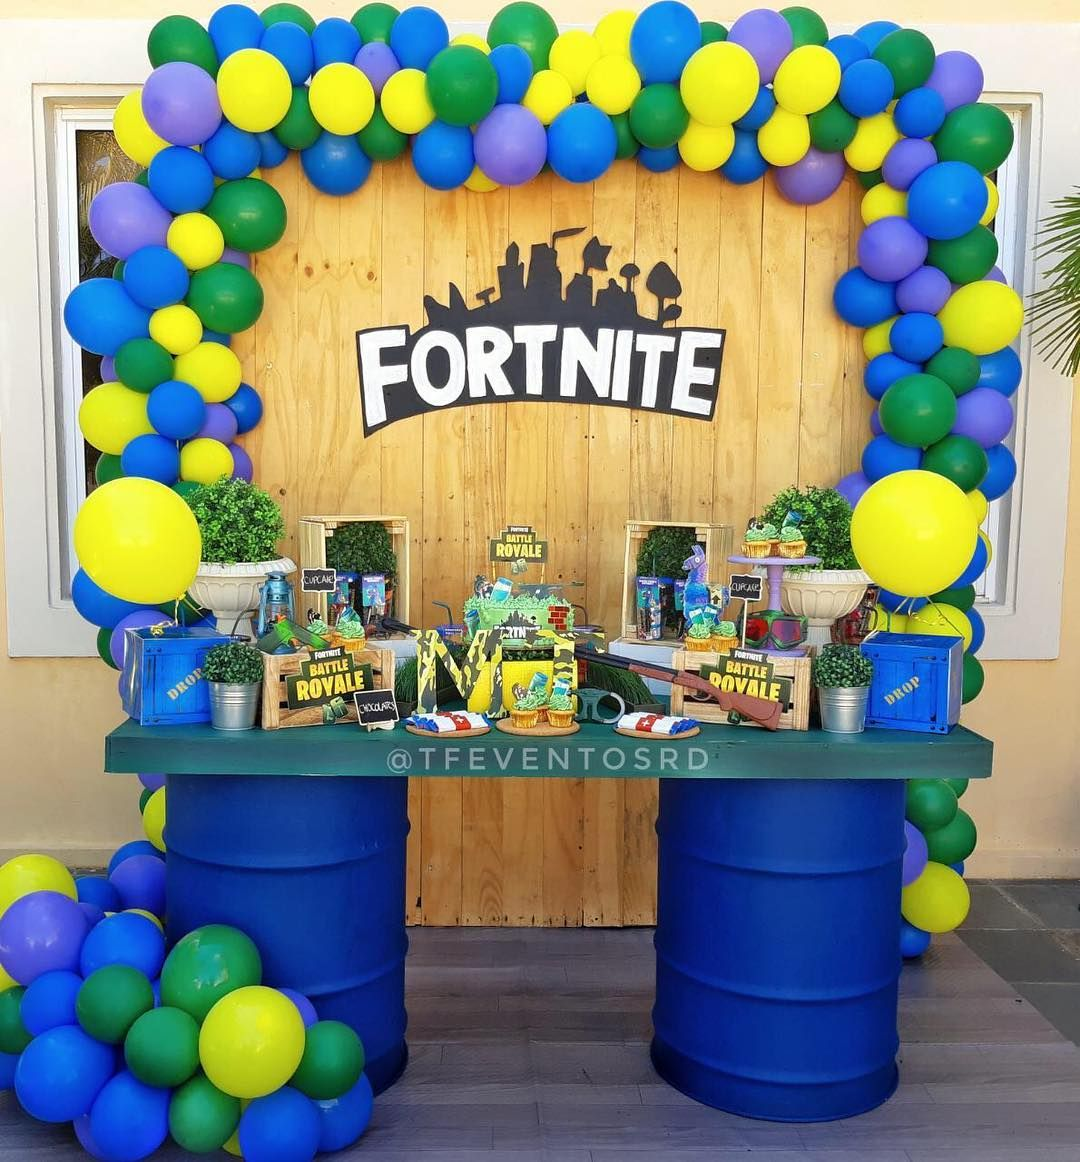 Want to plan an epic Fortnite themed birthday party, but